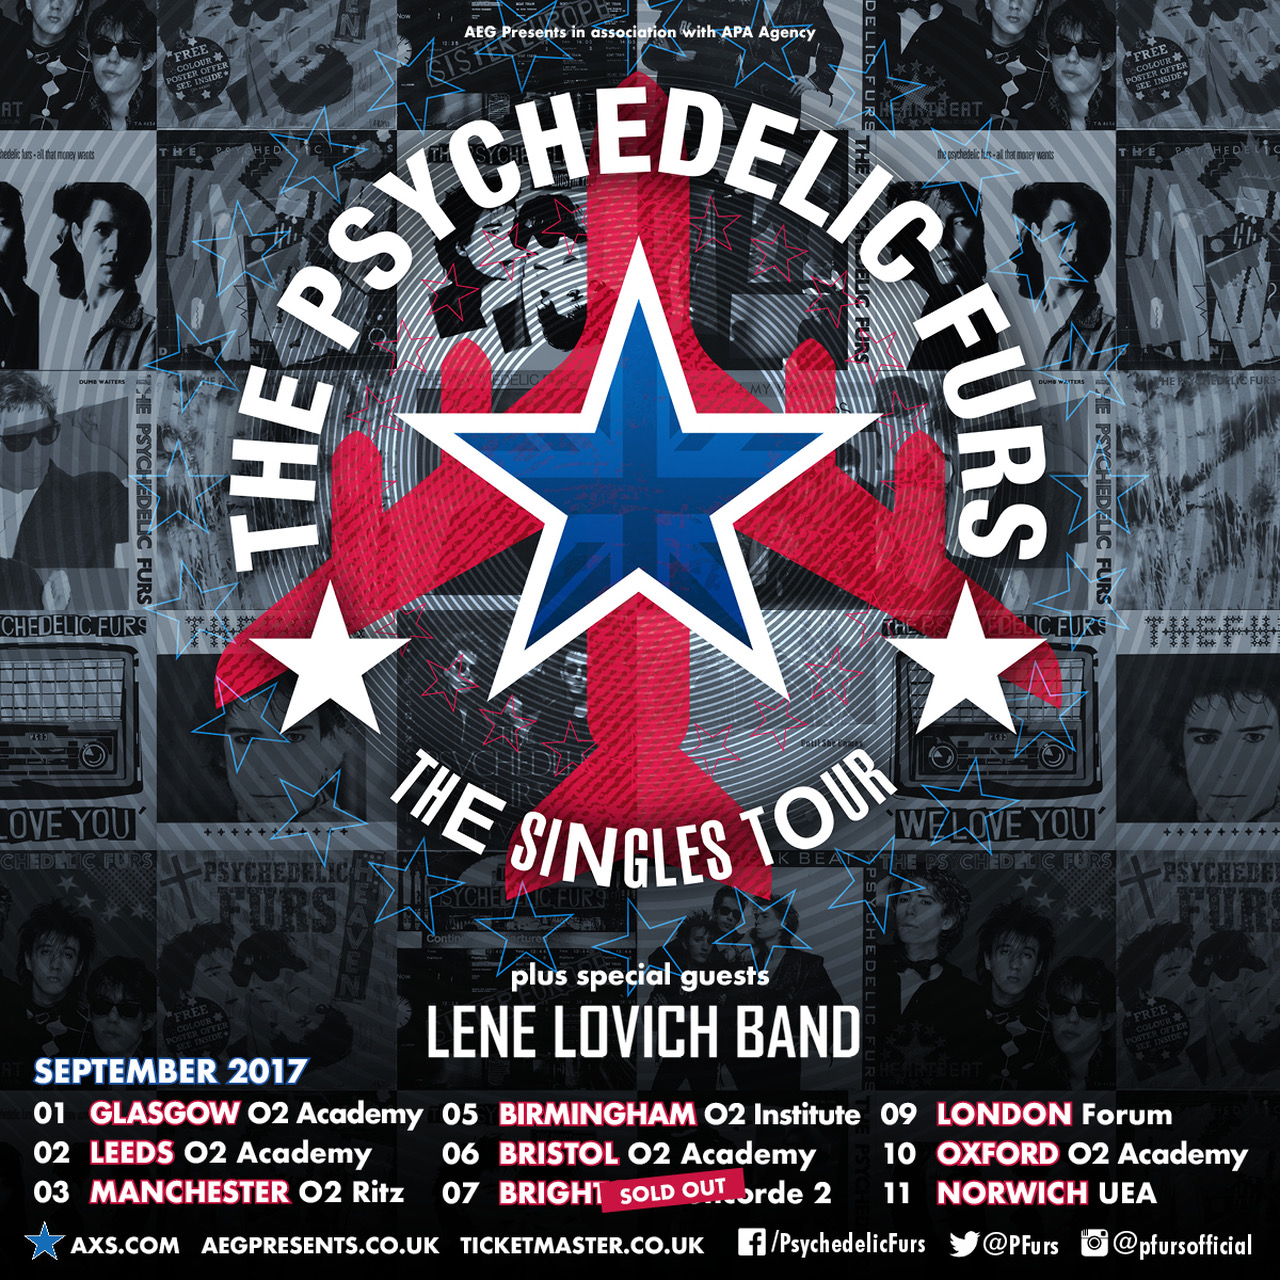 Poster for the Lene Lovich Band with the Psychodelic Furs, 2017 tour